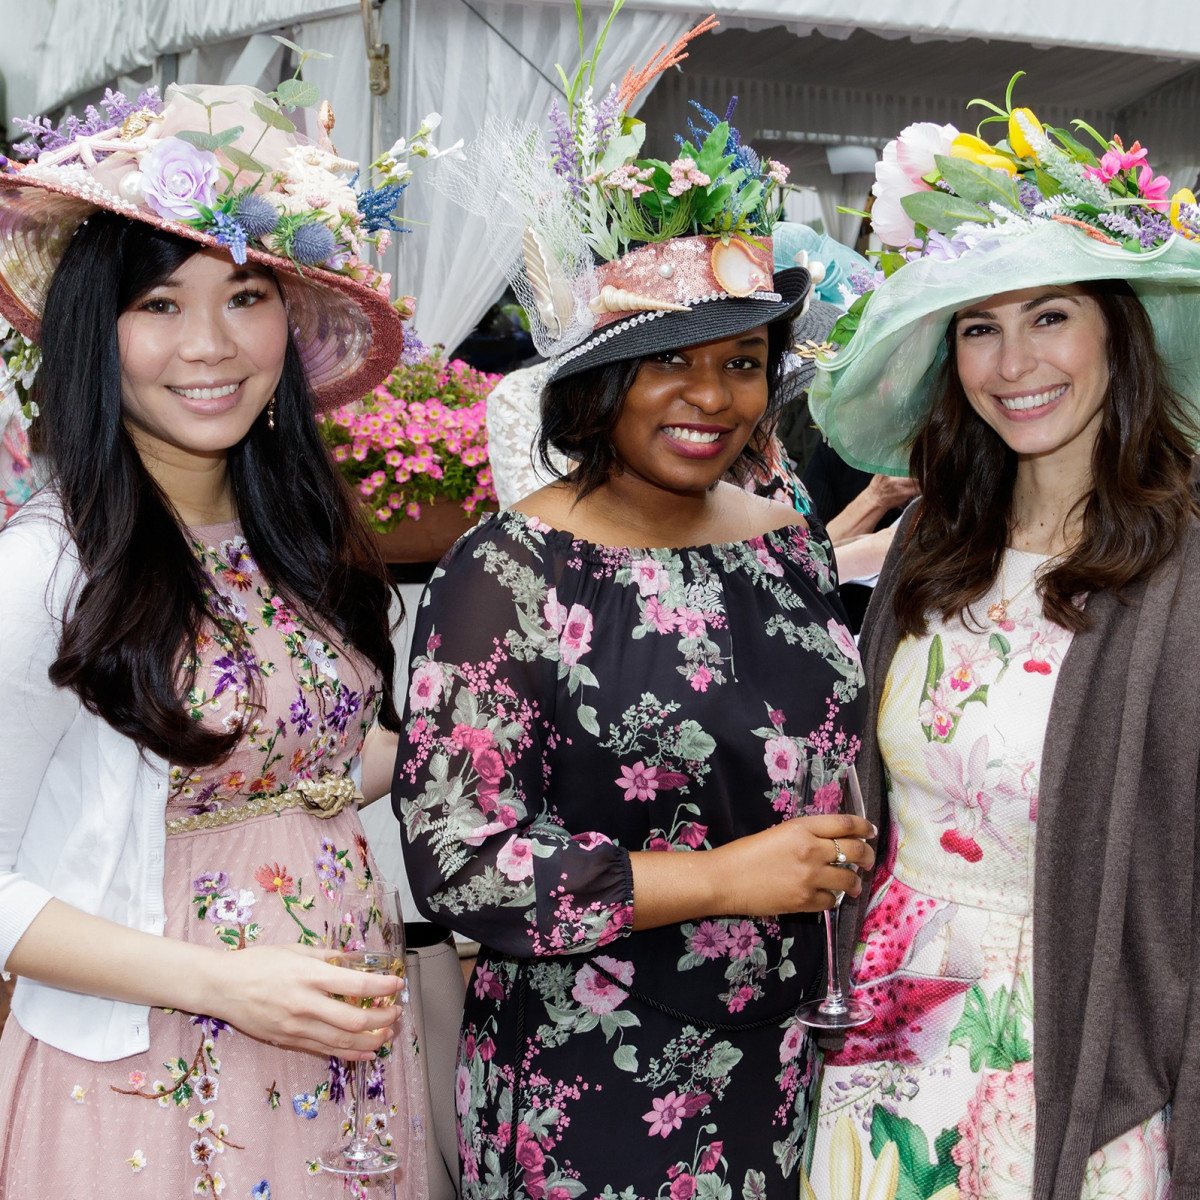 Mad Hatters 2018, Monica Peng, Courtney Solomon, Danielle Dukellis